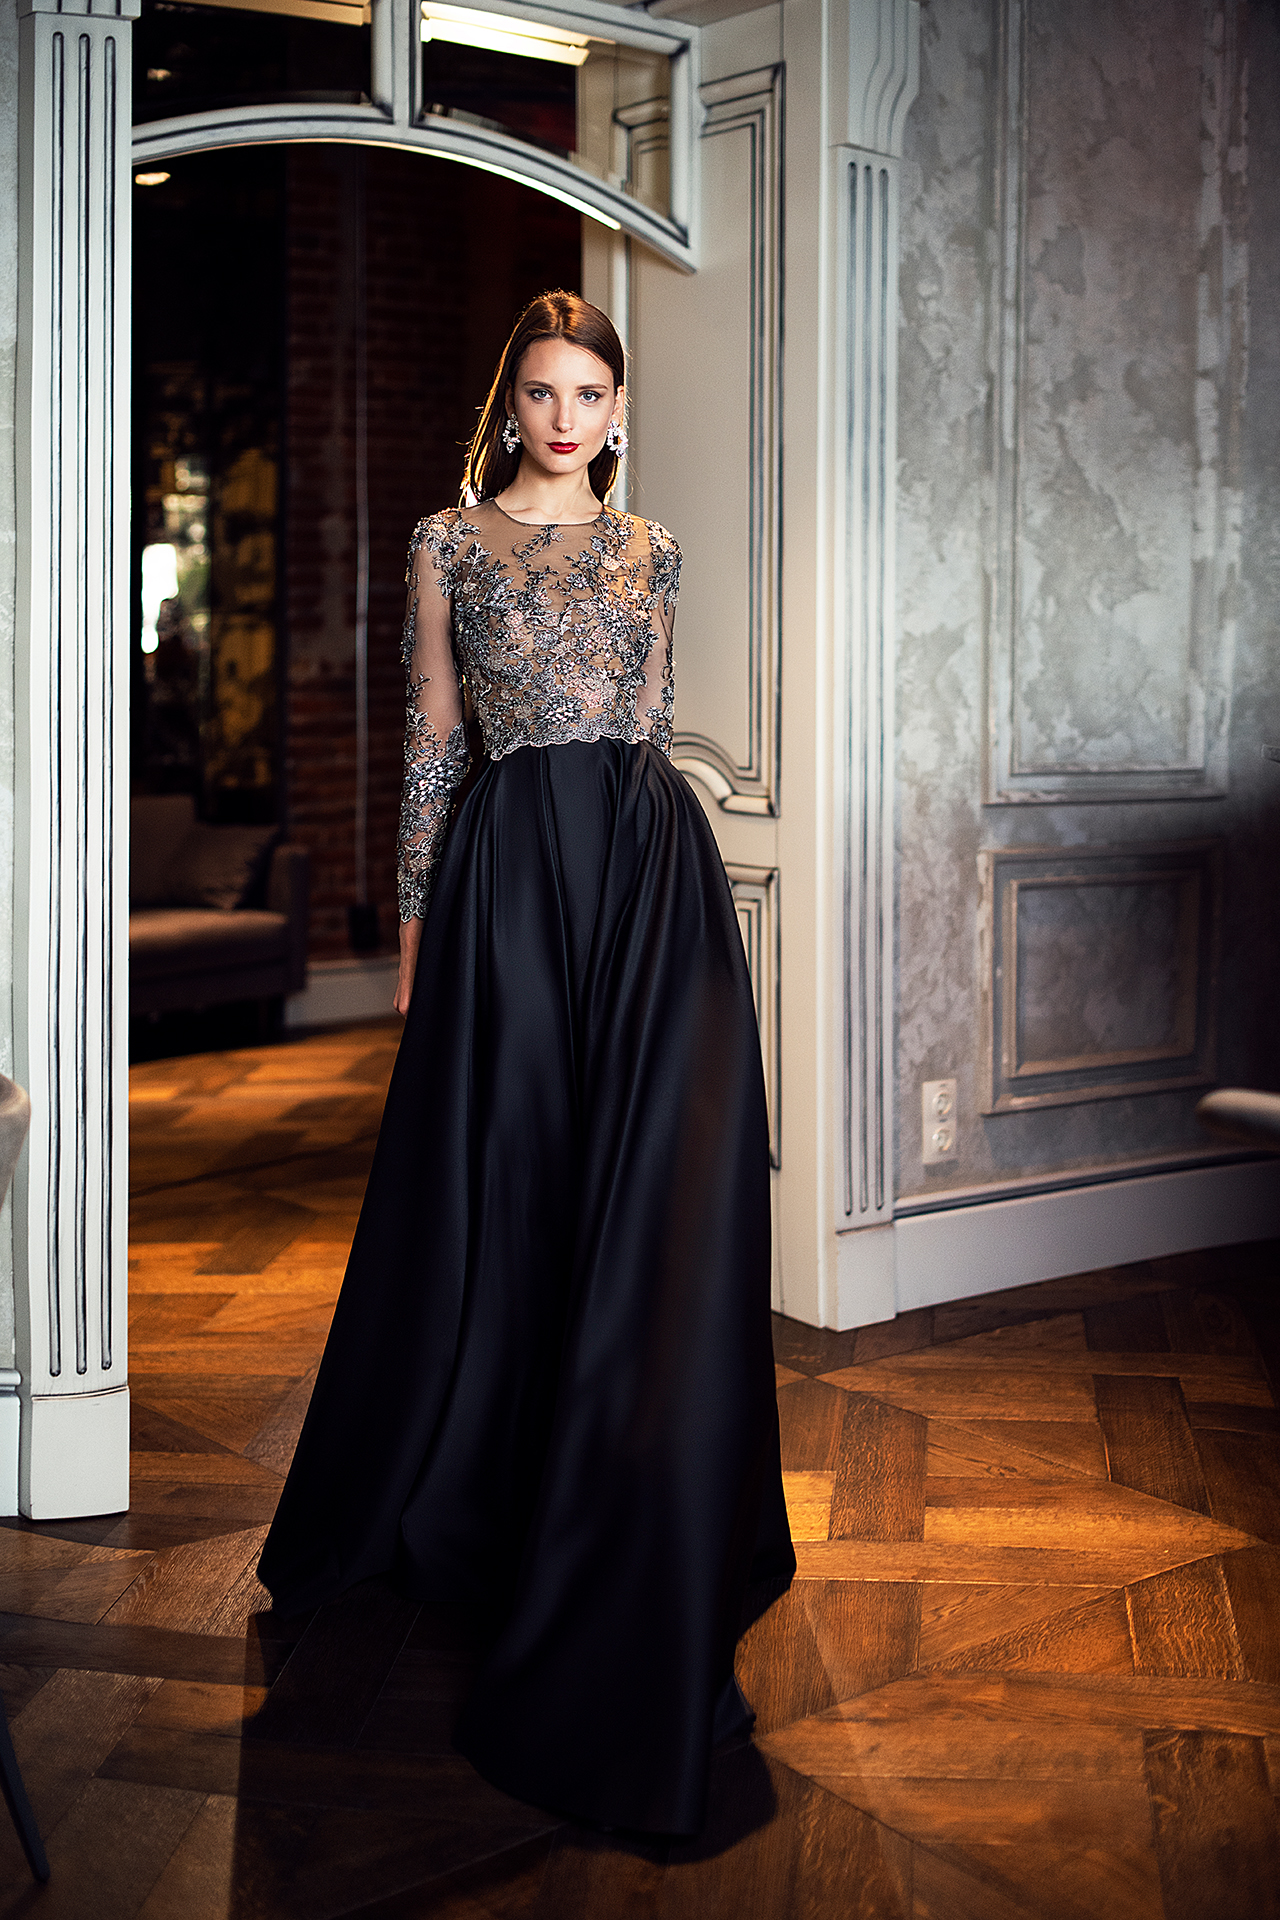 Evening gowns S-1392 Silhouette  A Line  Color  Black  Neckline  Jewel  Sleeves  Long Sleeves  Fitted  Train  No train - foto 2